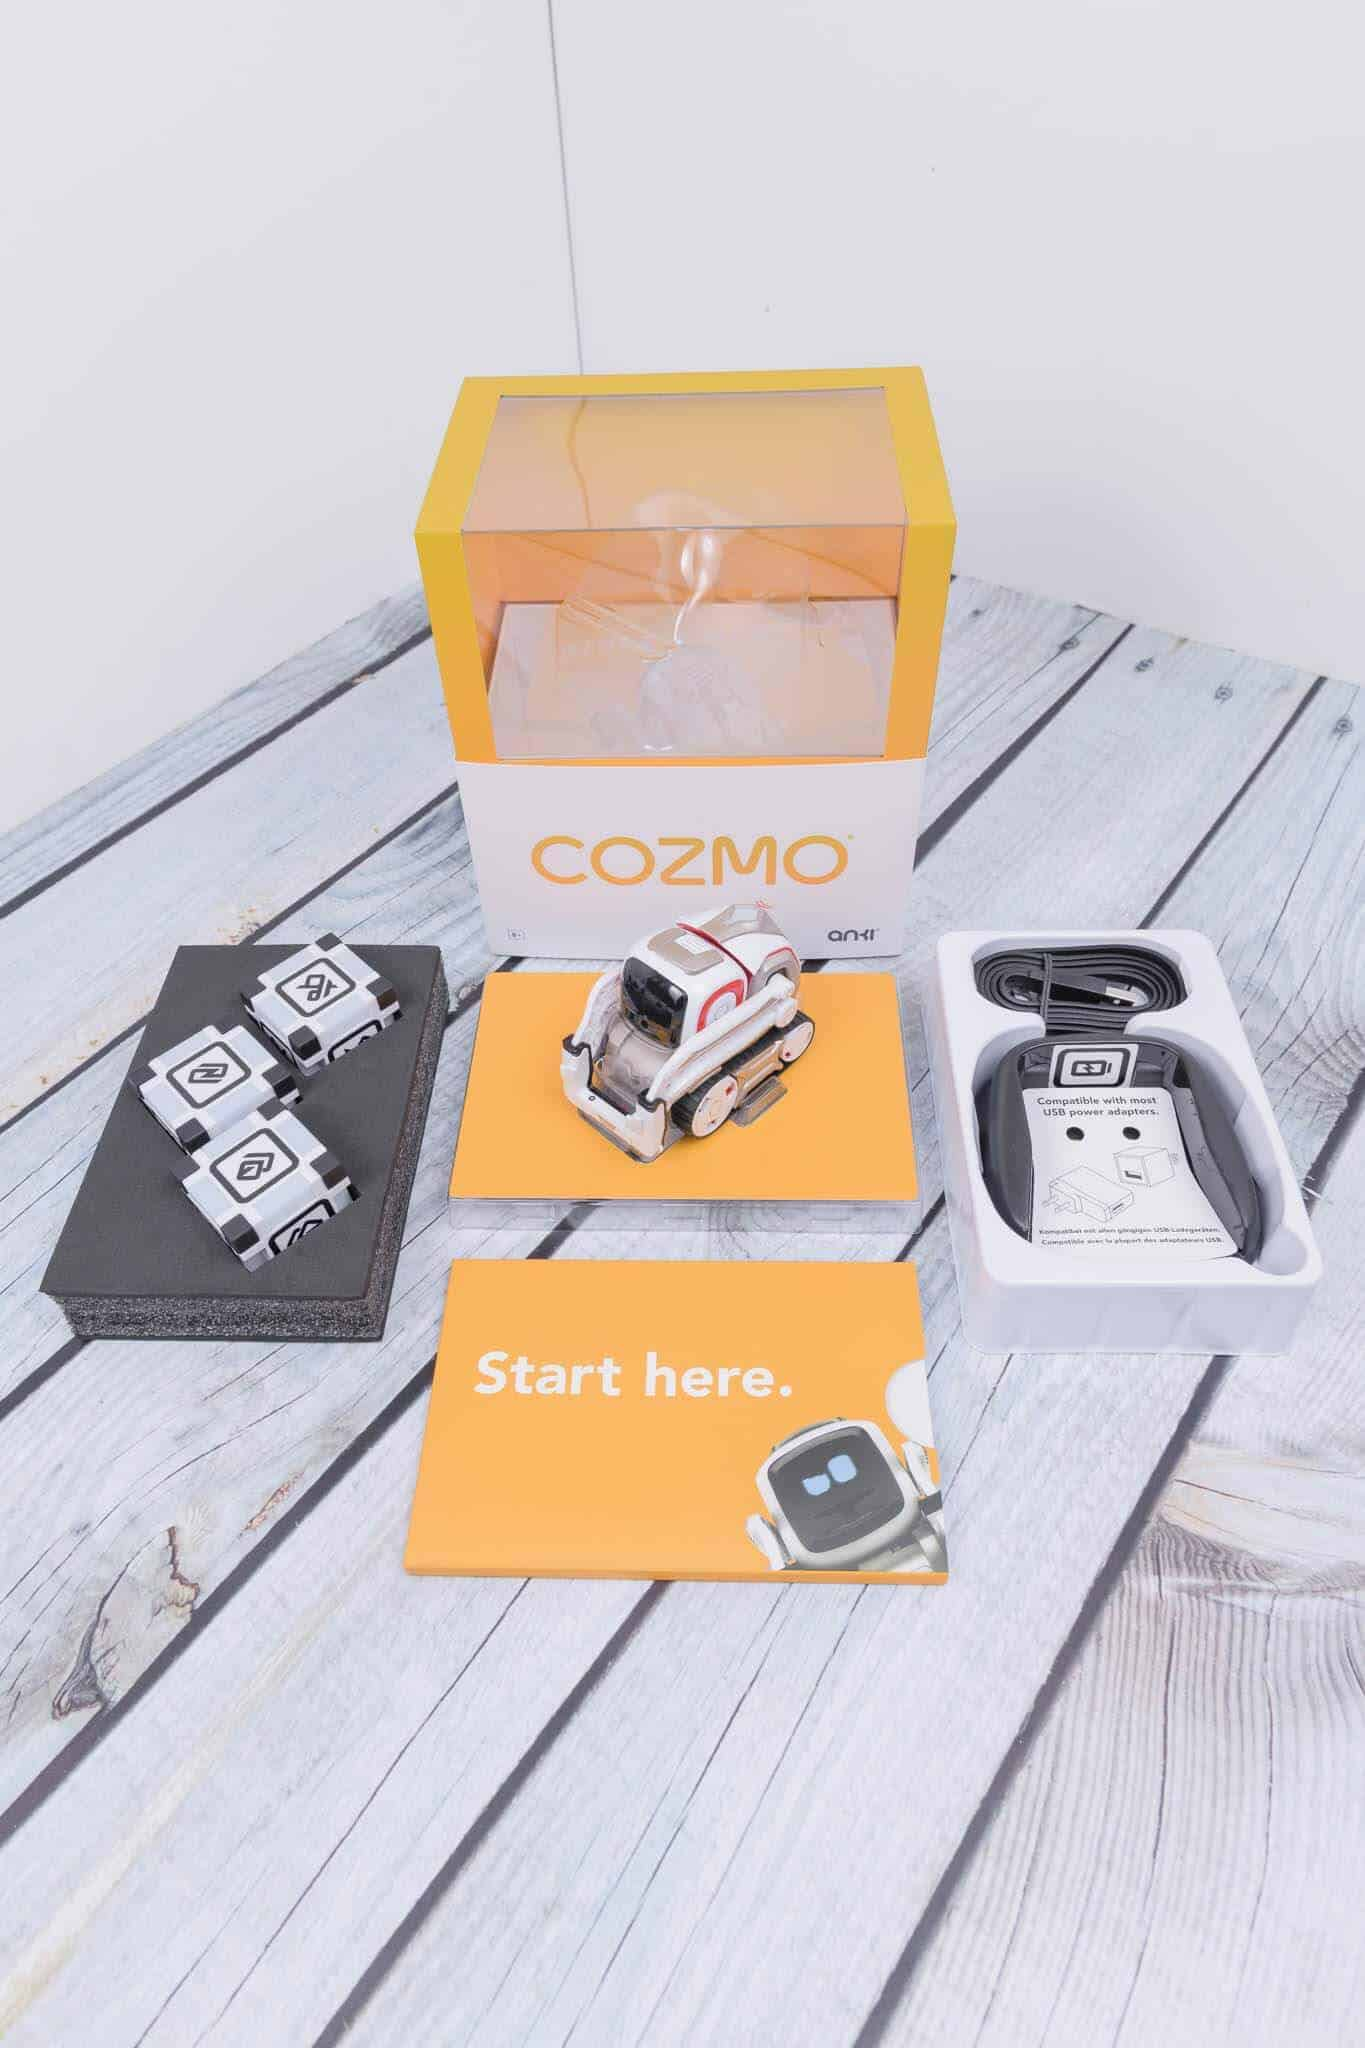 Anki Cozmo Robot Review - Whats in The Box Portrait mode